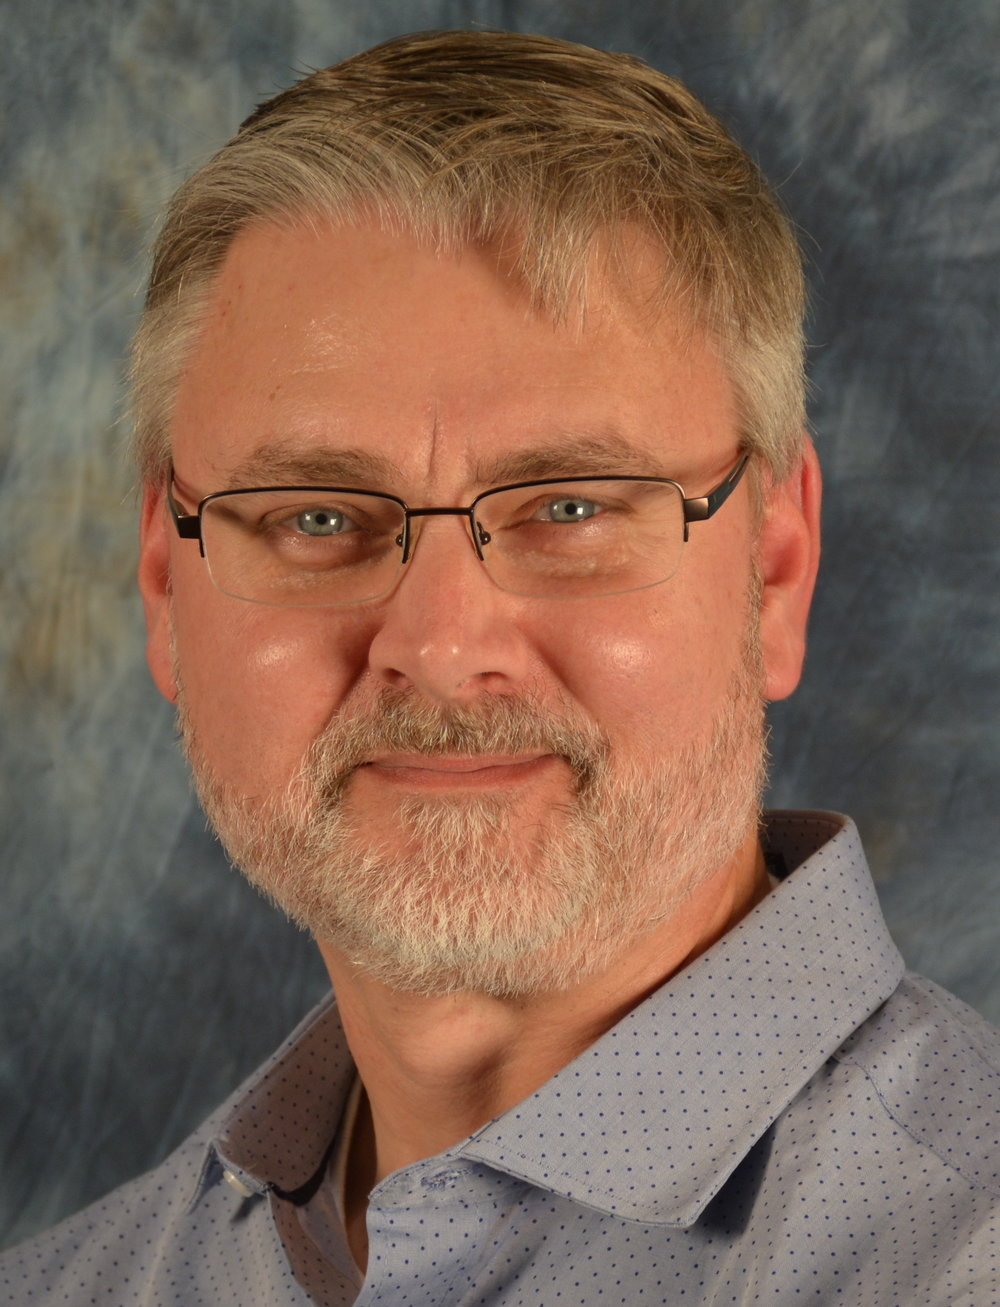 Bill Wassenaar Worship Director - bill@rockbridgelife.com Bill Wassenaar, his wife Tammy, along with their three children have made Rockbridge their church home since moving to Cedar Park in 2013. Bill has been playing drums since the age of seven and has used that talent for Praise & Worship music since the late 1990's.